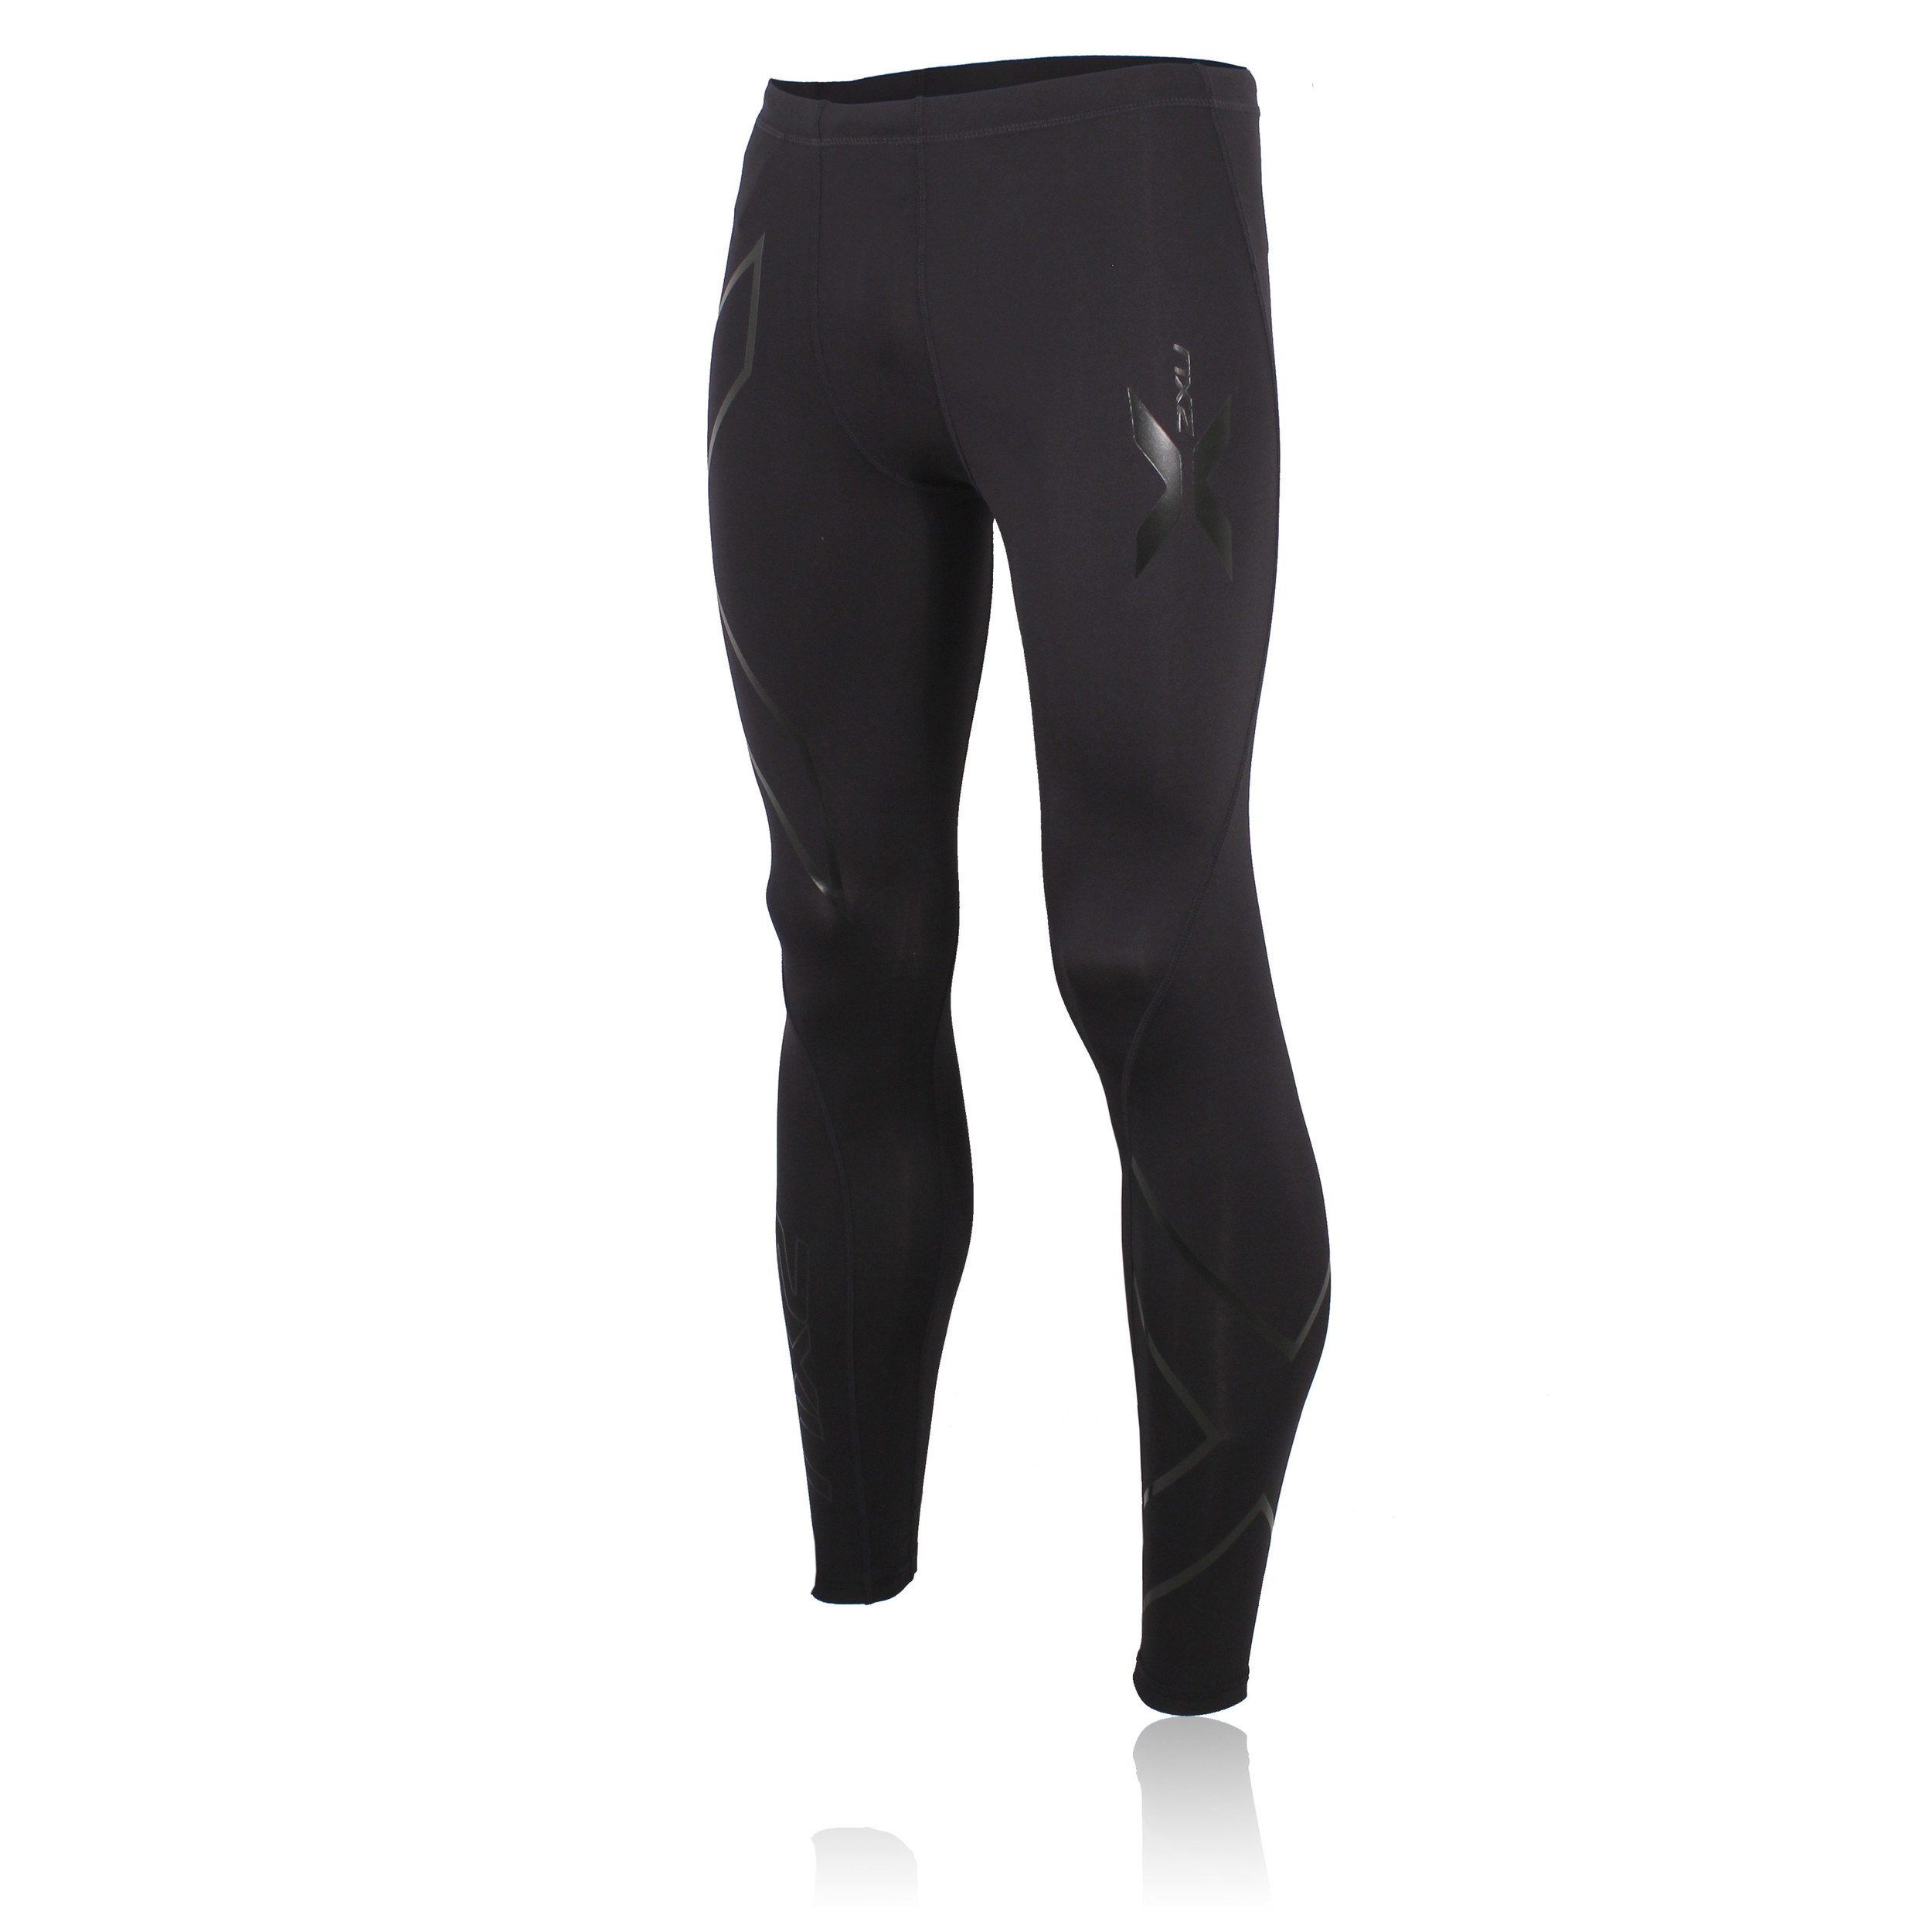 2xu pwx compression homme running collant legging de sport bas jogging pantalons ebay. Black Bedroom Furniture Sets. Home Design Ideas